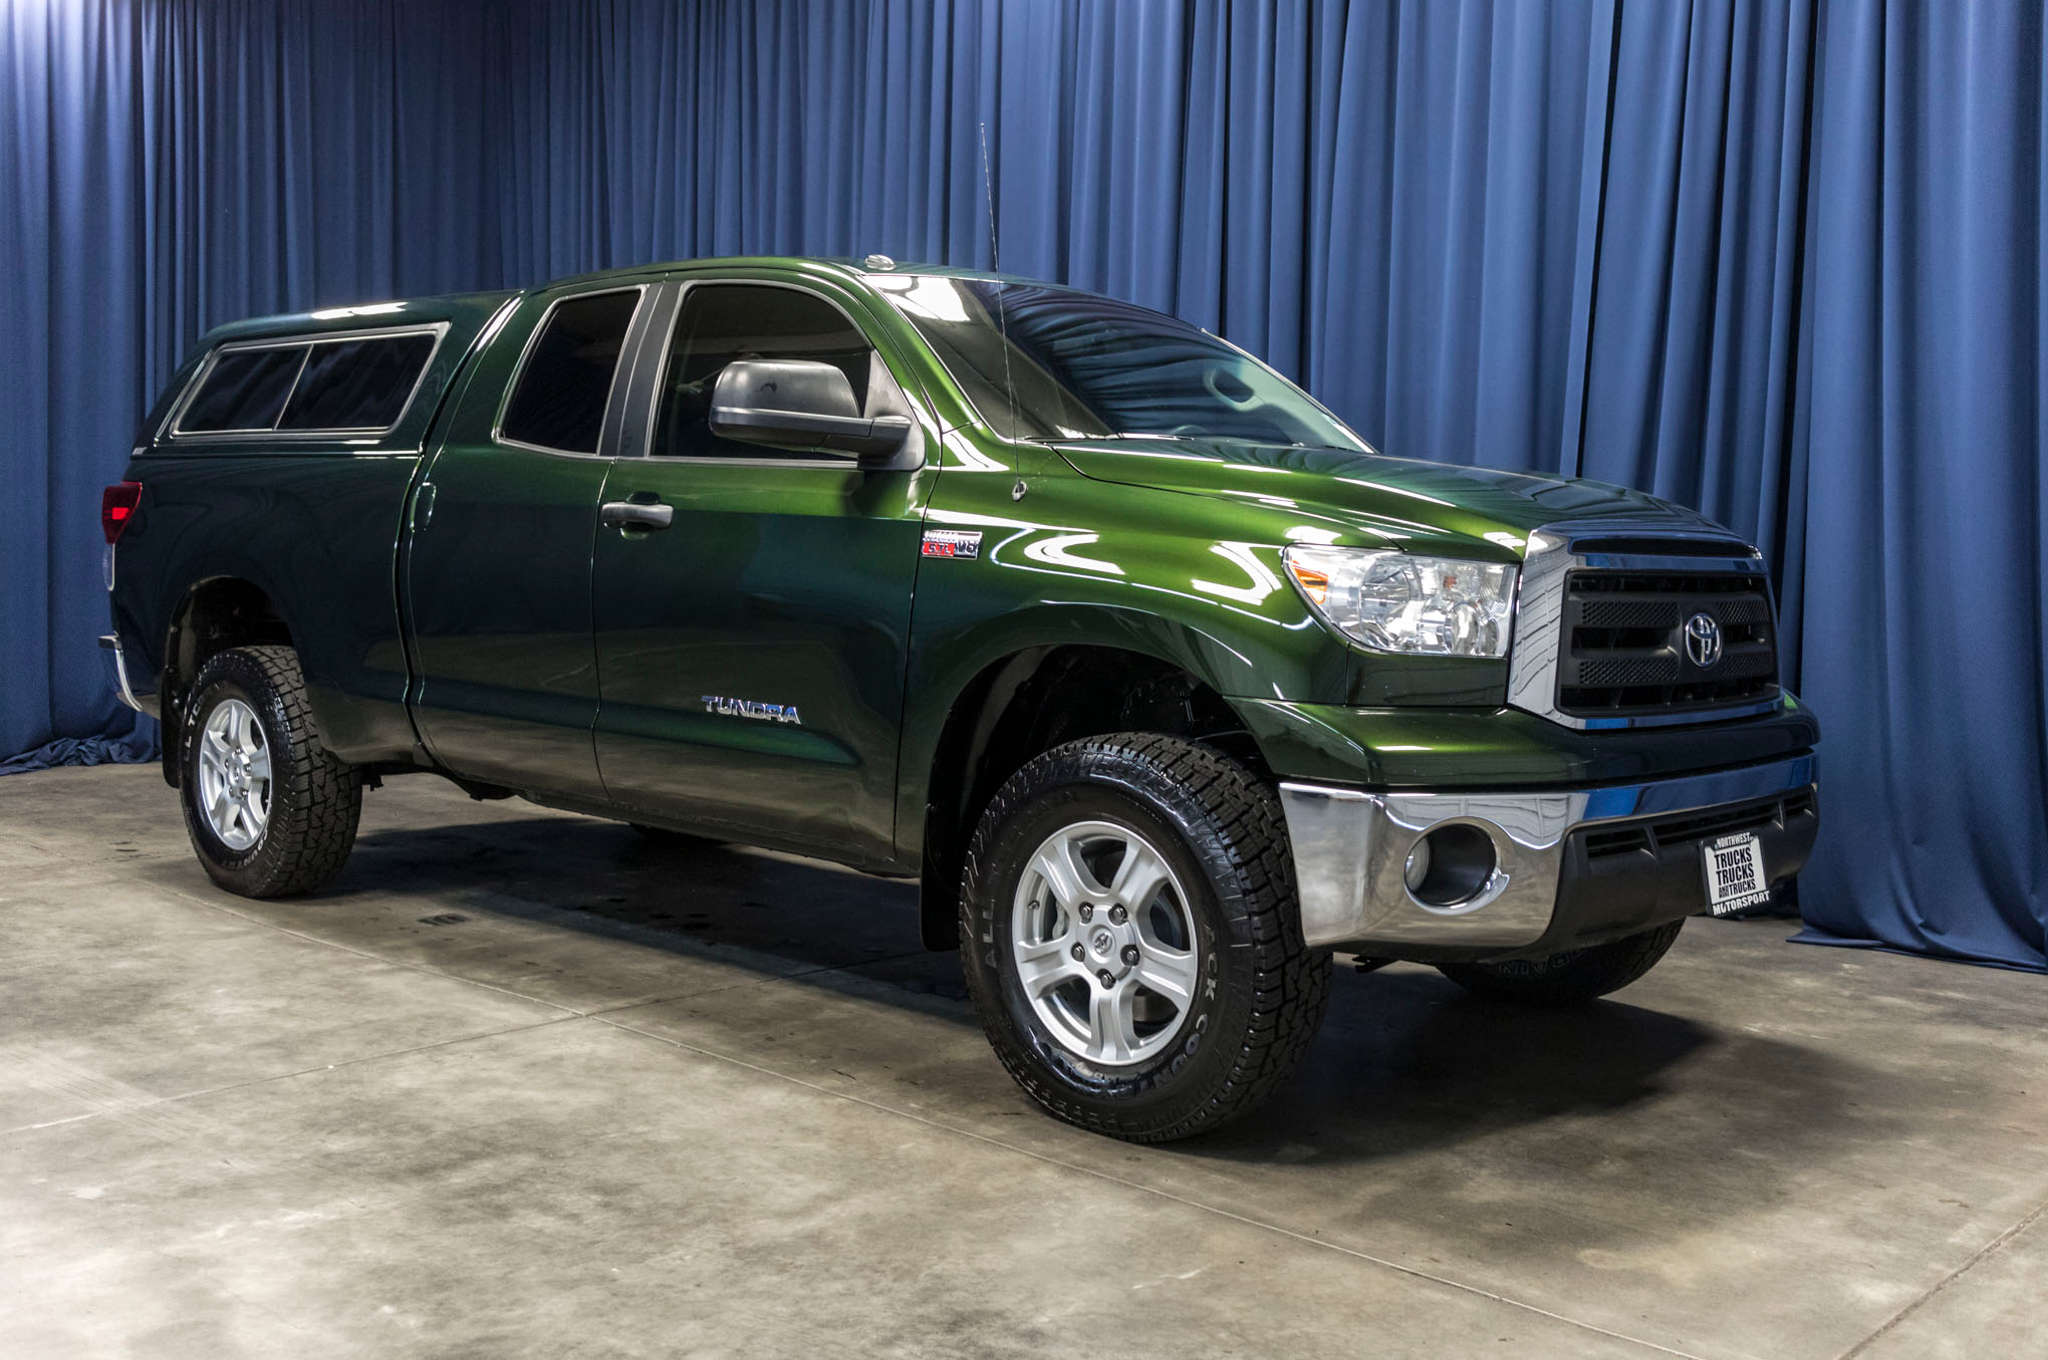 Used 2013 Toyota Tundra SR5 4x4 Truck For Sale